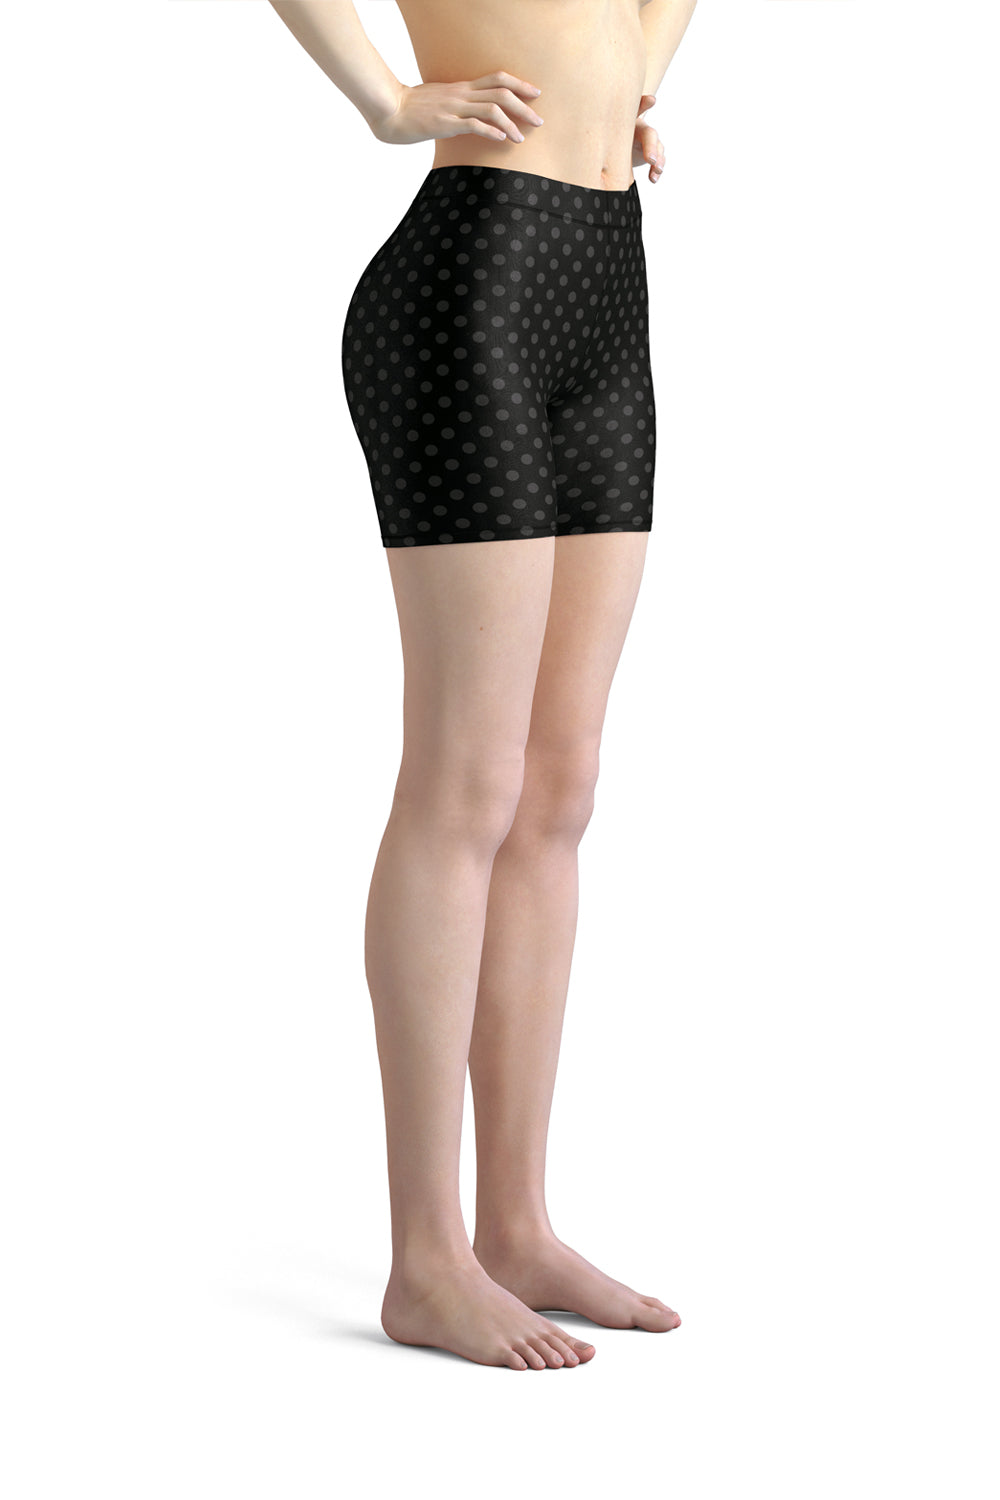 polka-dots-black-and-charcoal-gray-urban-shorts